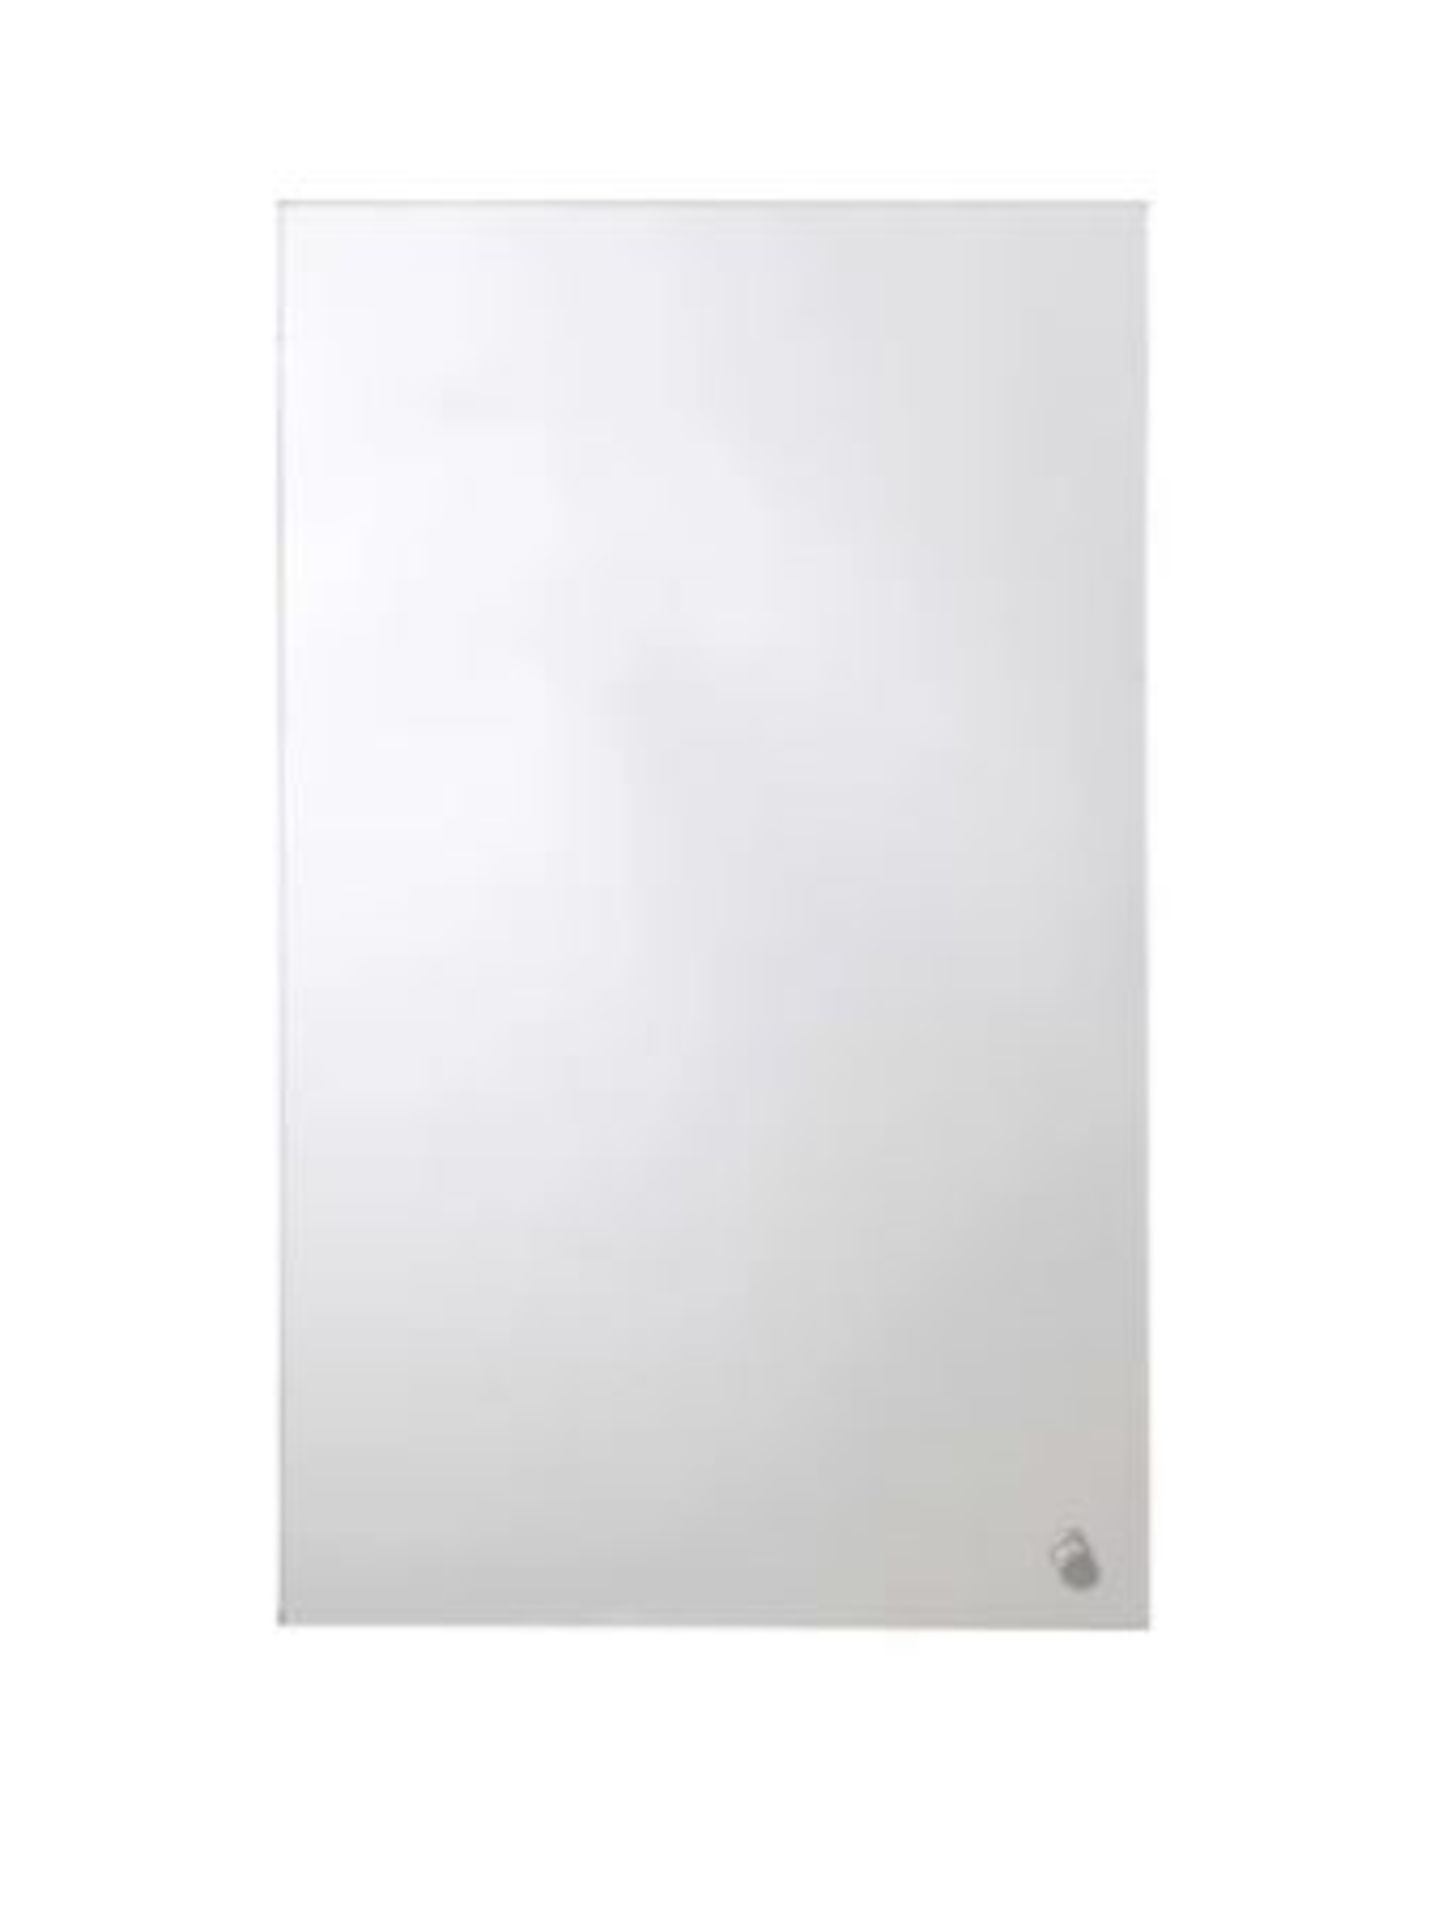 CARRA 30CM X 50CM SURFACE MOUNT MIRROR CABINET